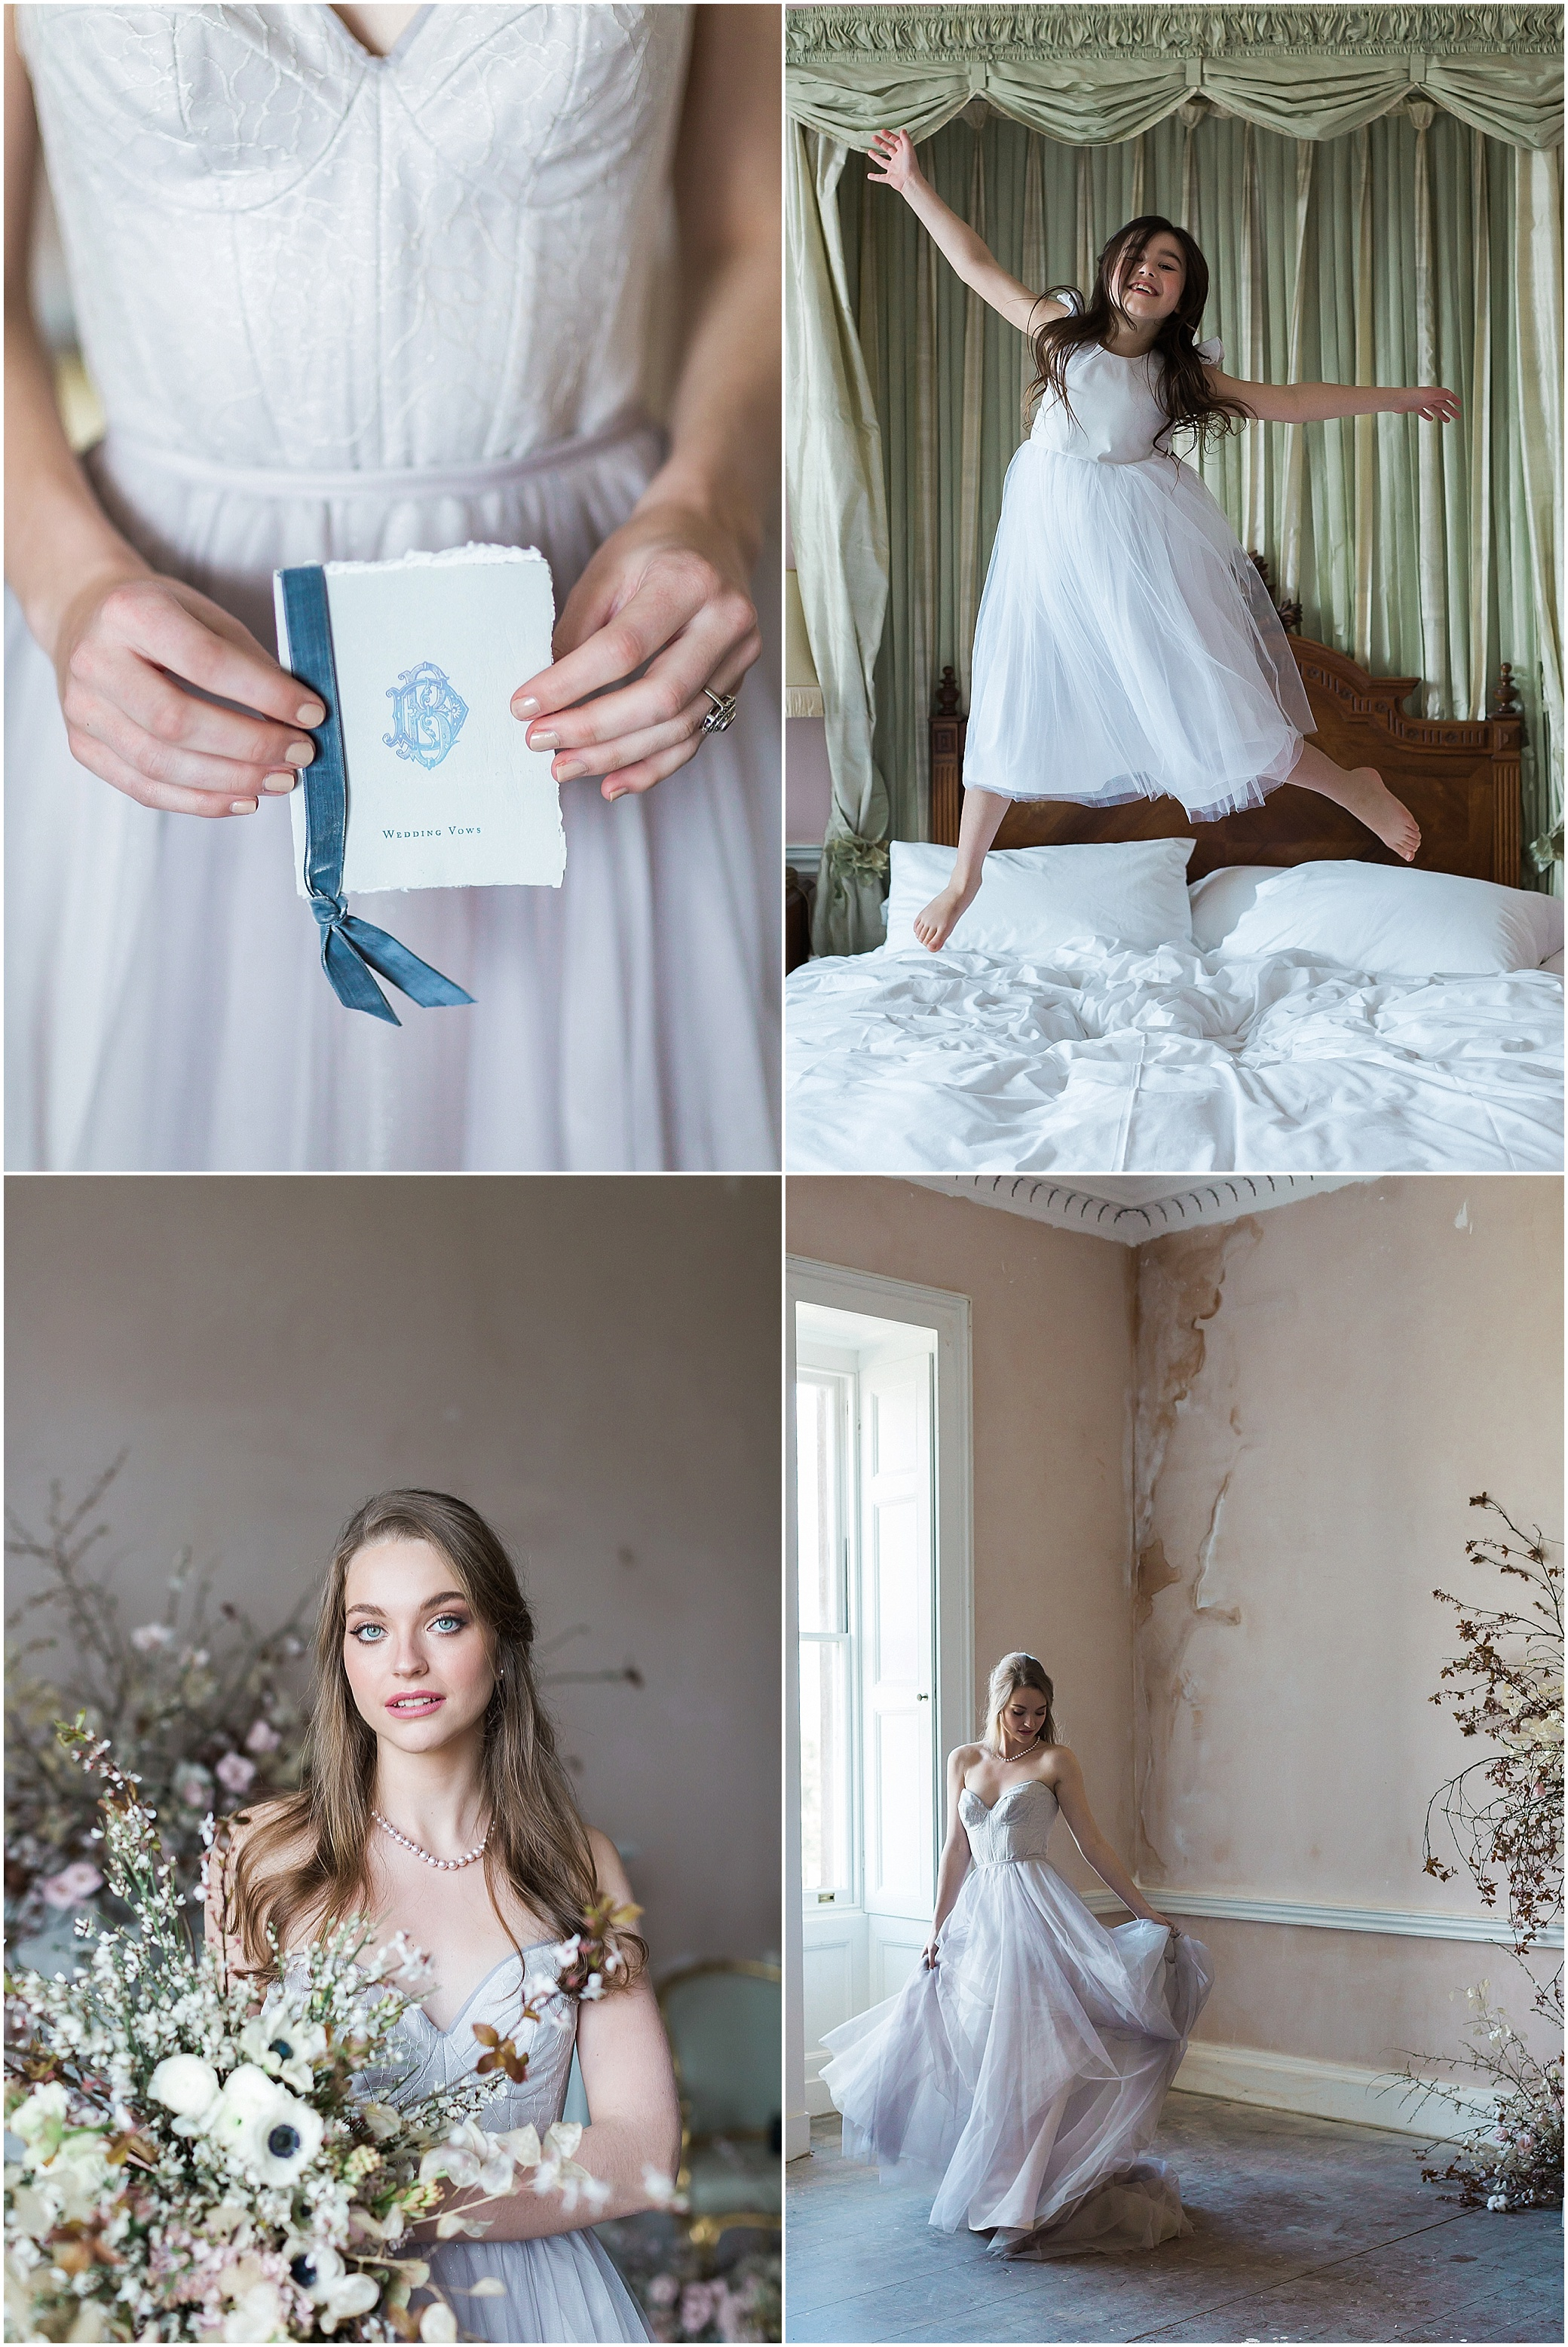 Beautiful bride, flower girl, stationery and florals at Somerley House in Hampshire